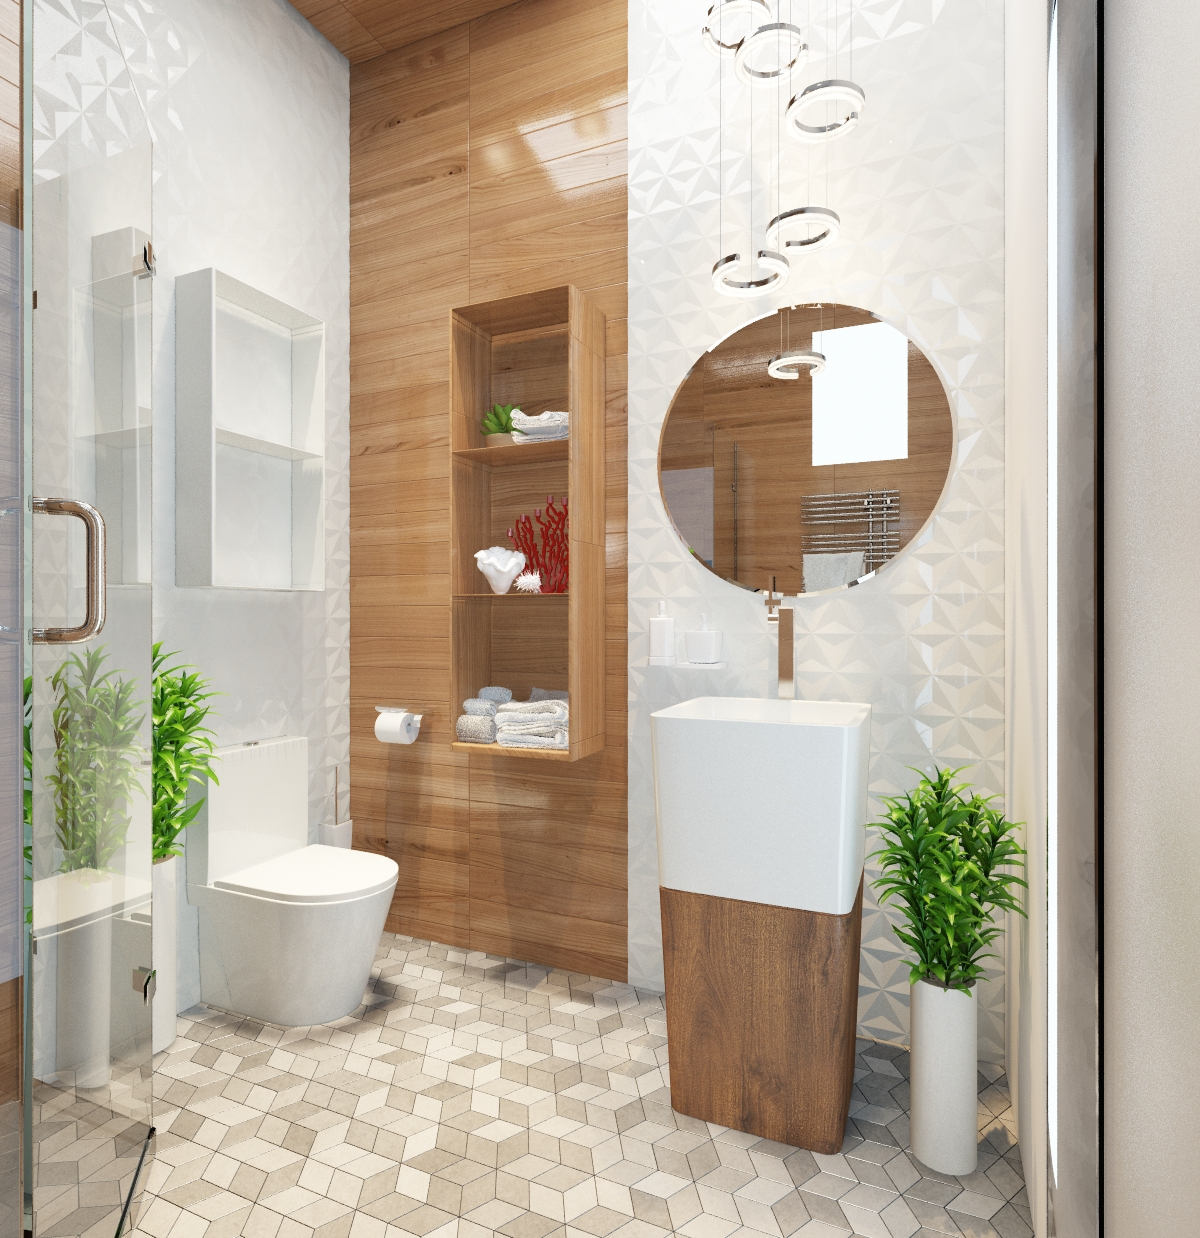 Home Design Ideas Bathroom: Applying Modern Bathroom Decor With Creative And Perfect